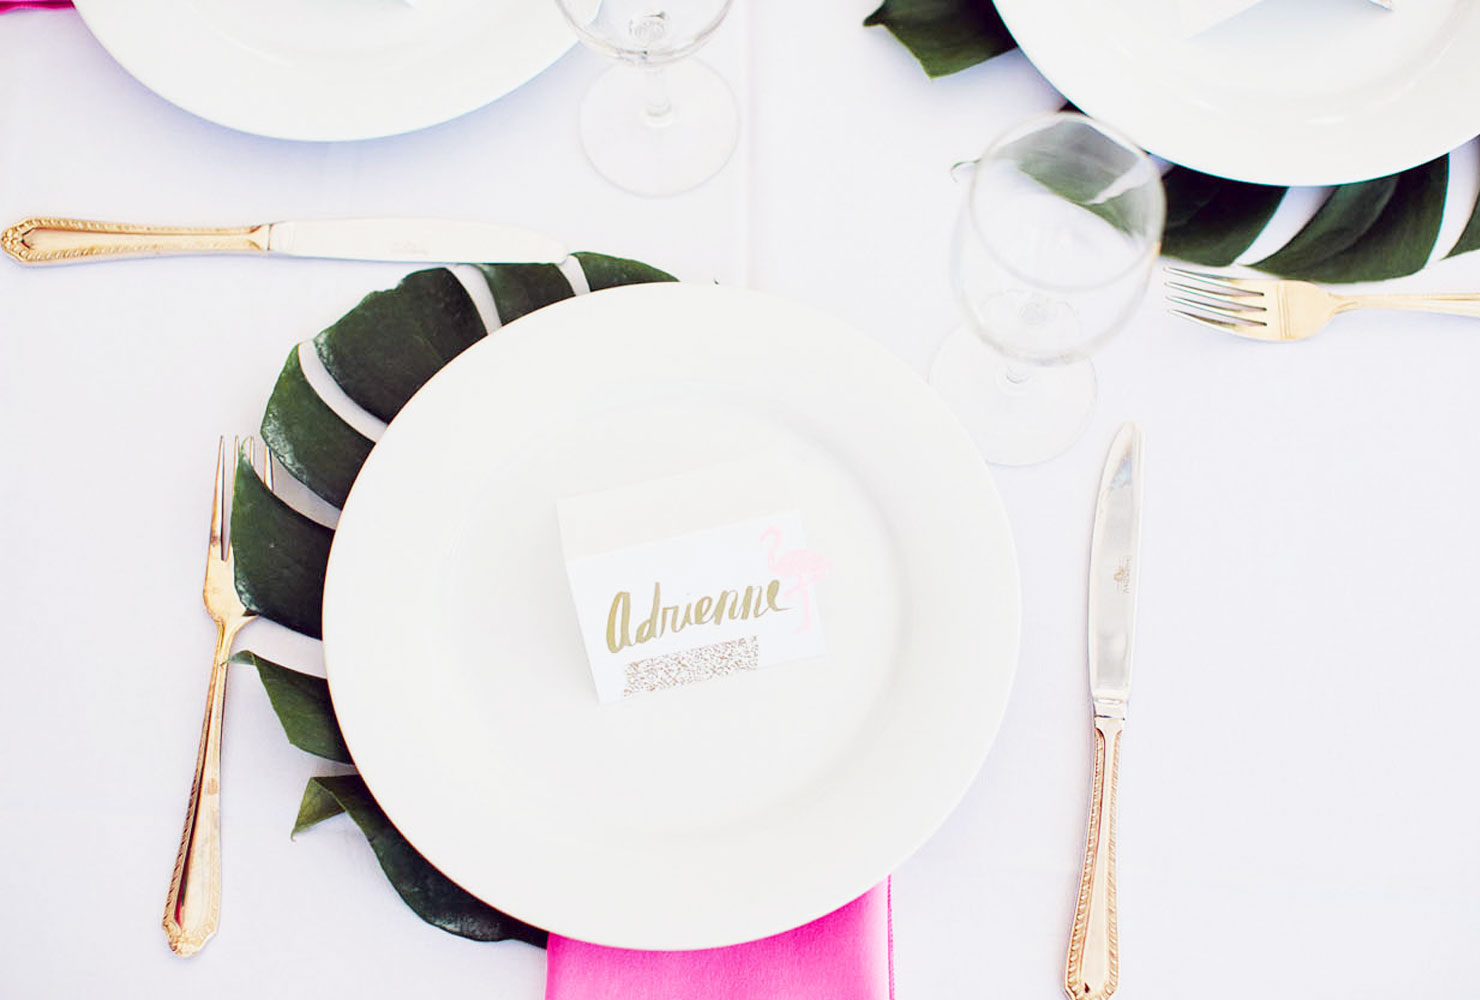 White plates on palm leaves with pink napkins and gold flatware